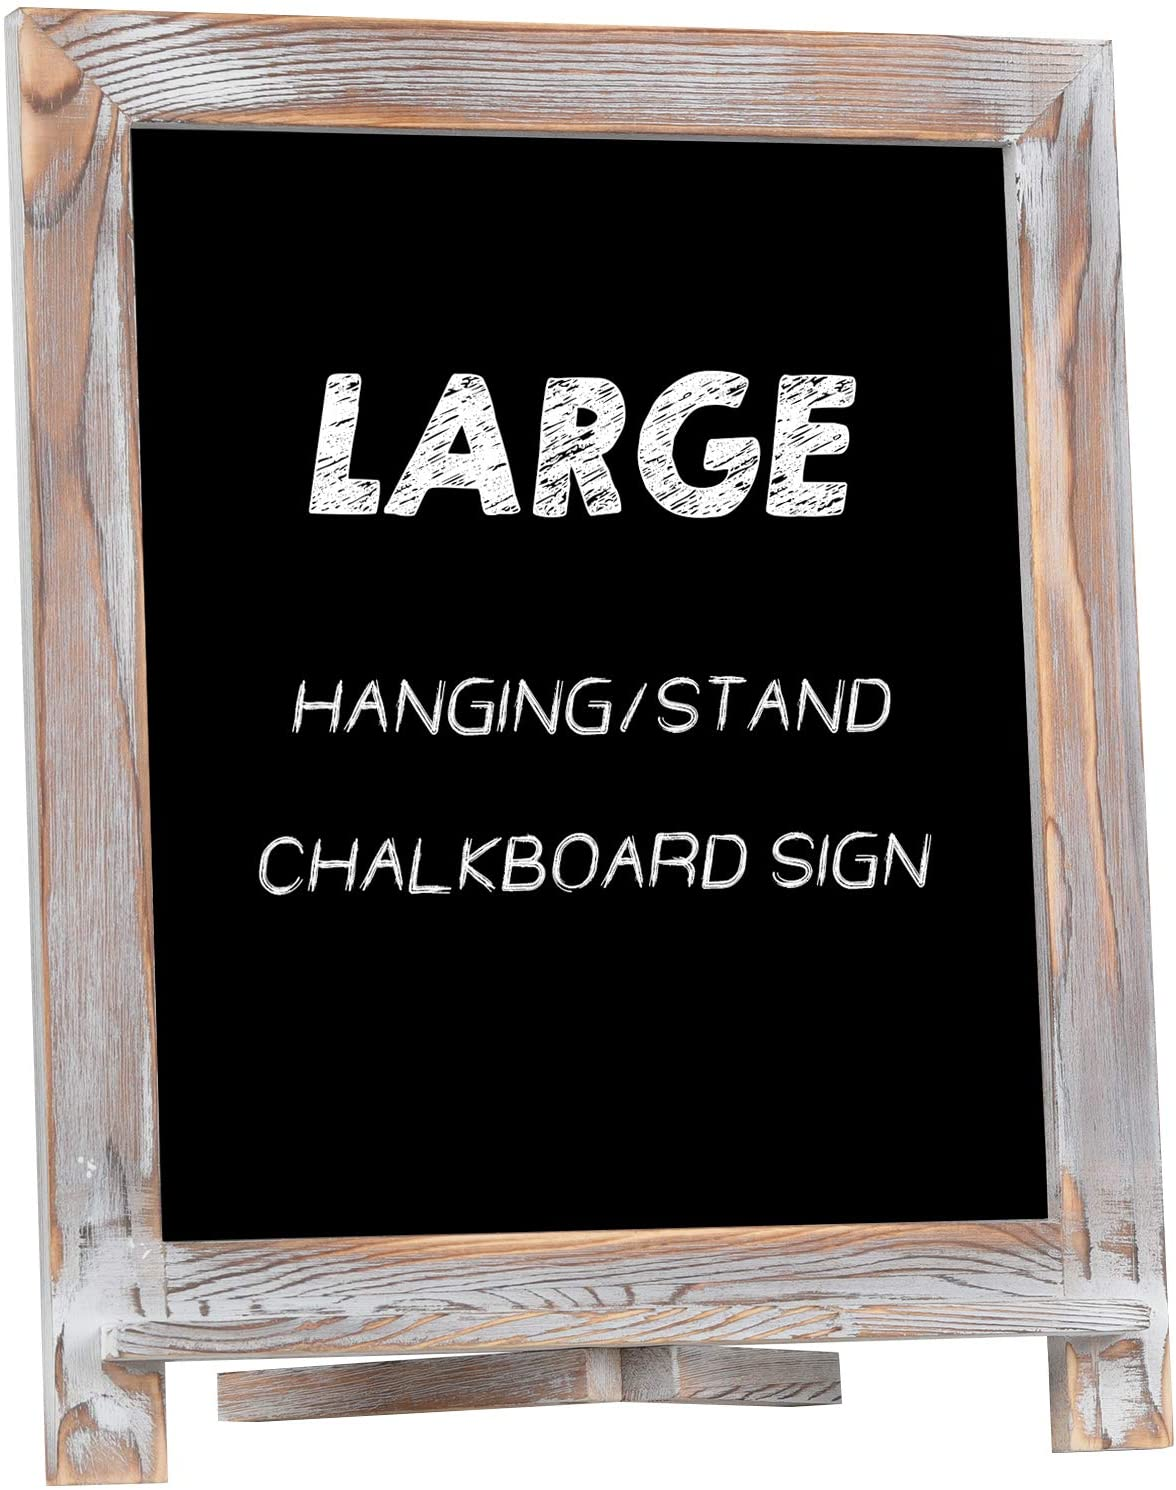 """Rustic Chalkboard Sign, NEARPOW 15""""x12"""" Tabletop Stand and Wall Hanging Display, Pine Wood Frame with Smooth Magnetic Surface Chalk Board Easel for ..."""